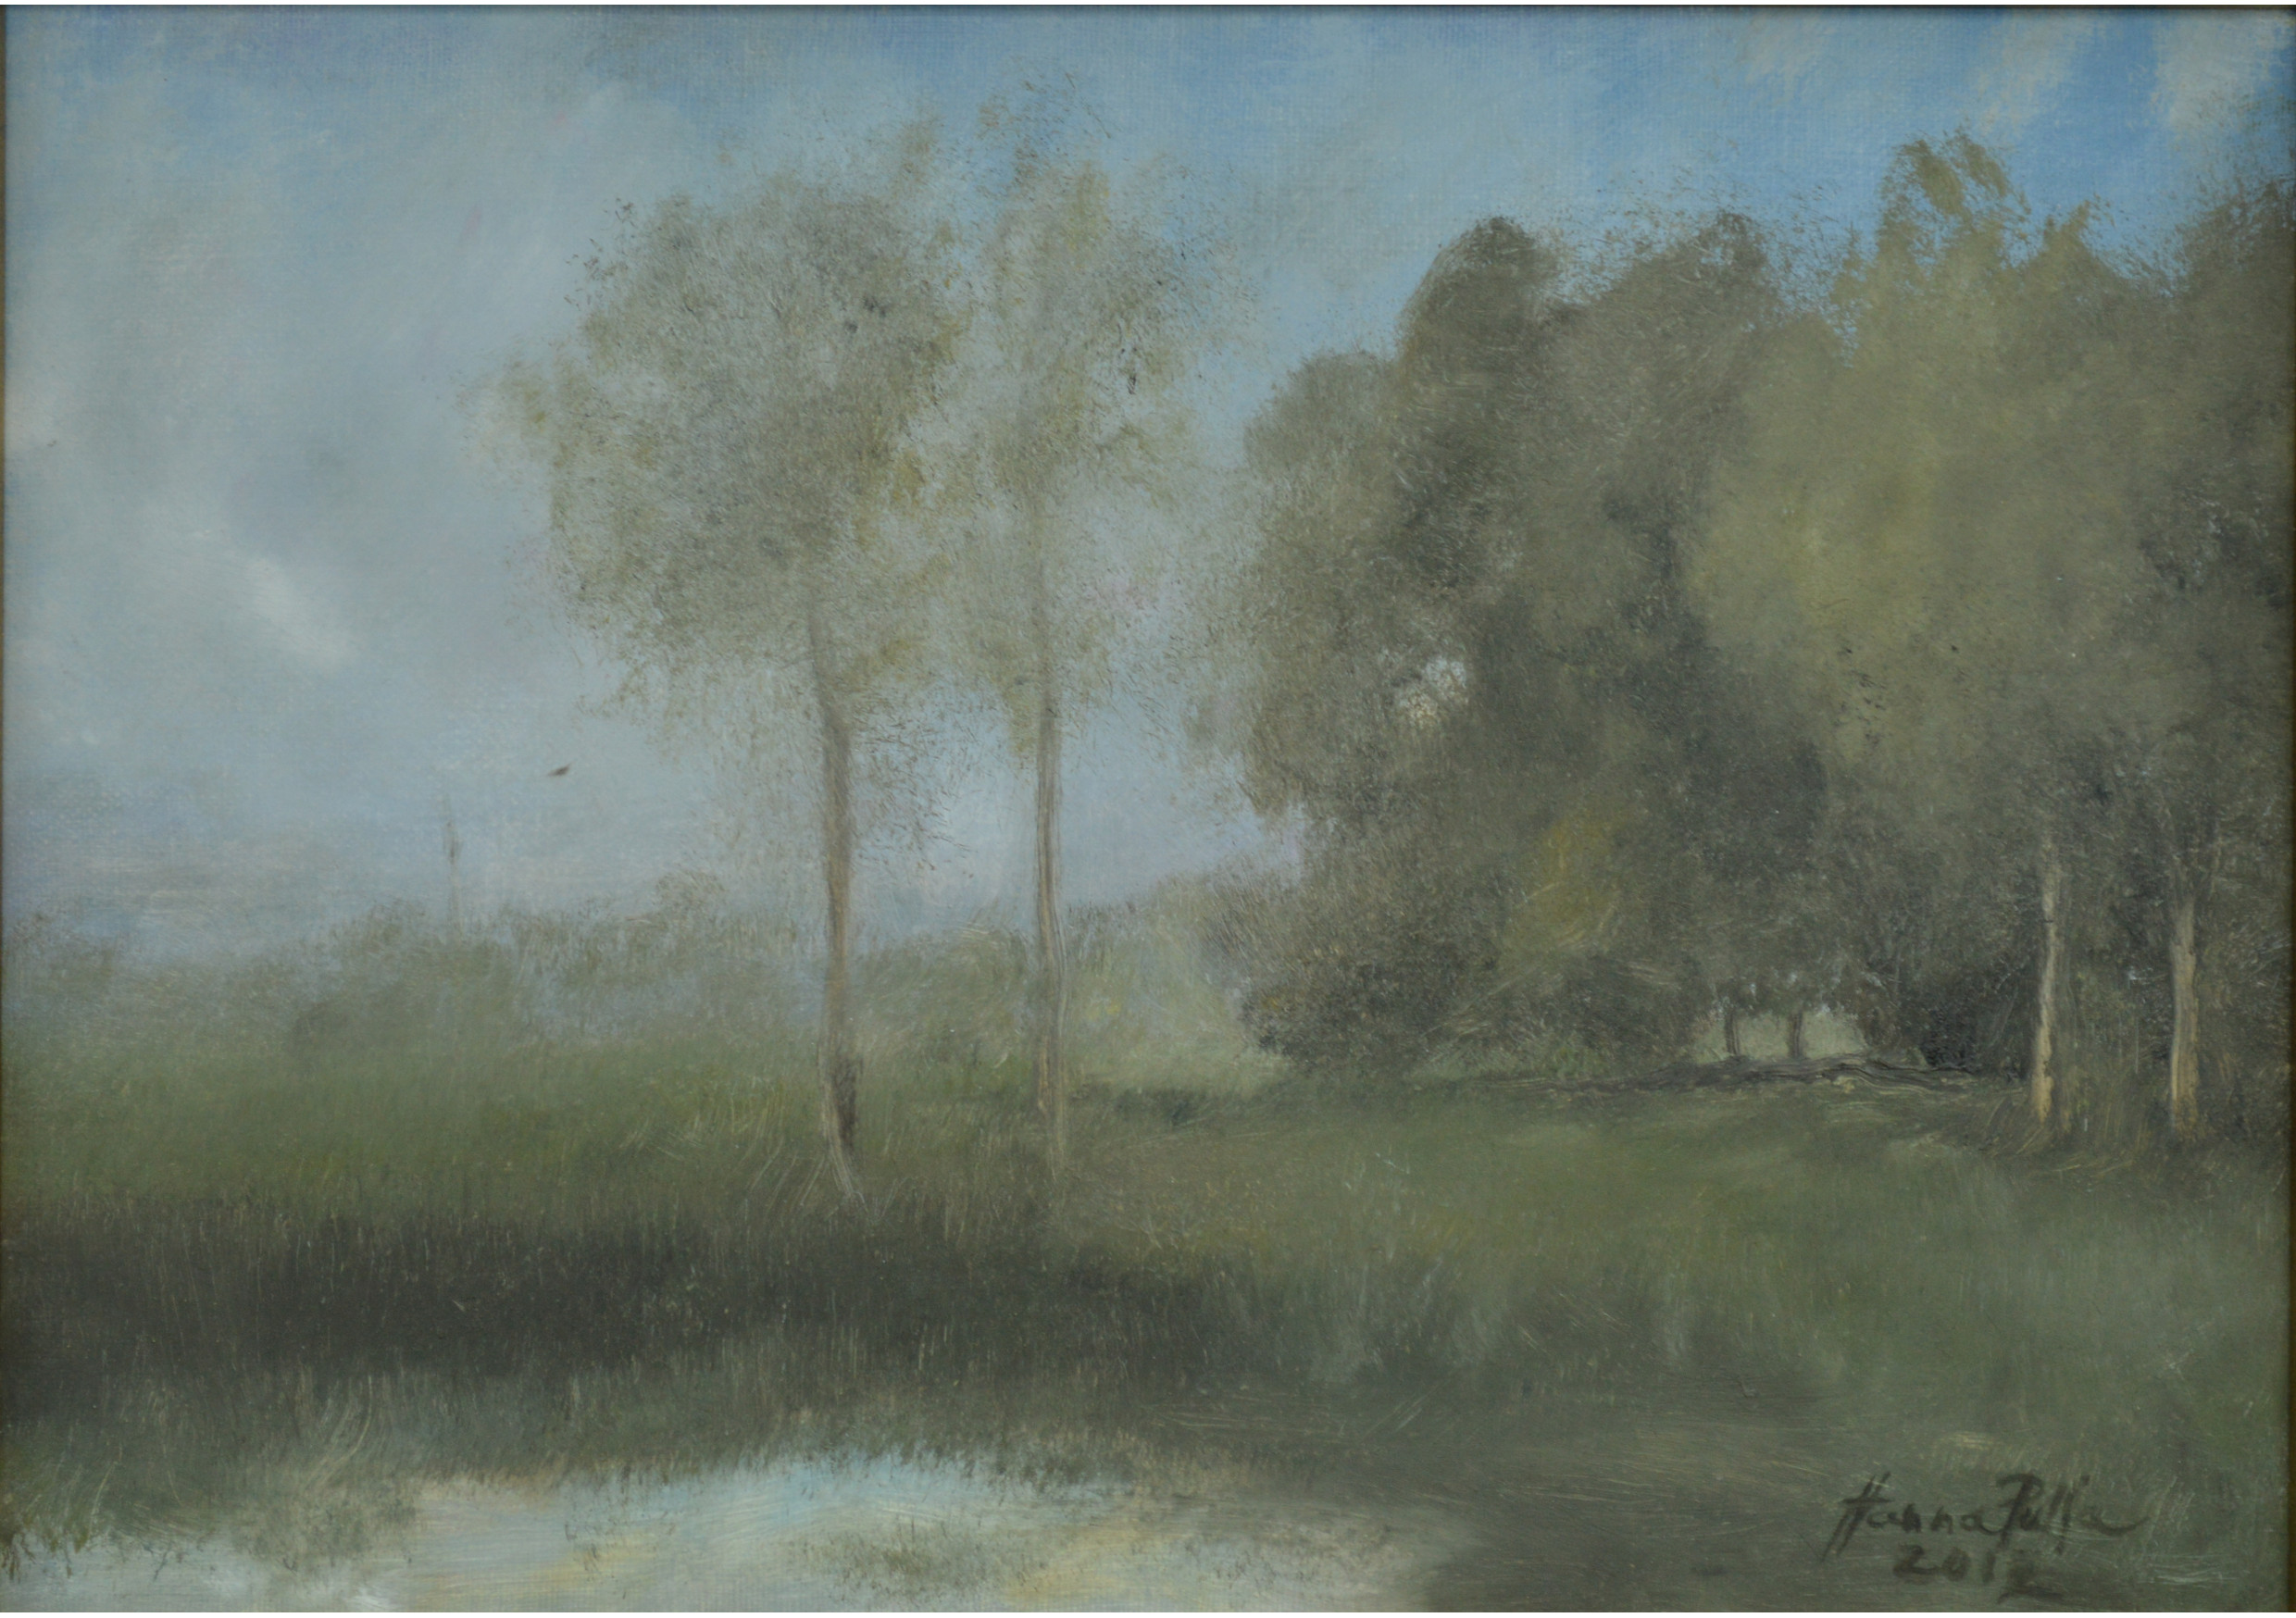 The Pond, Oil on canvas, 19 x 27 cm